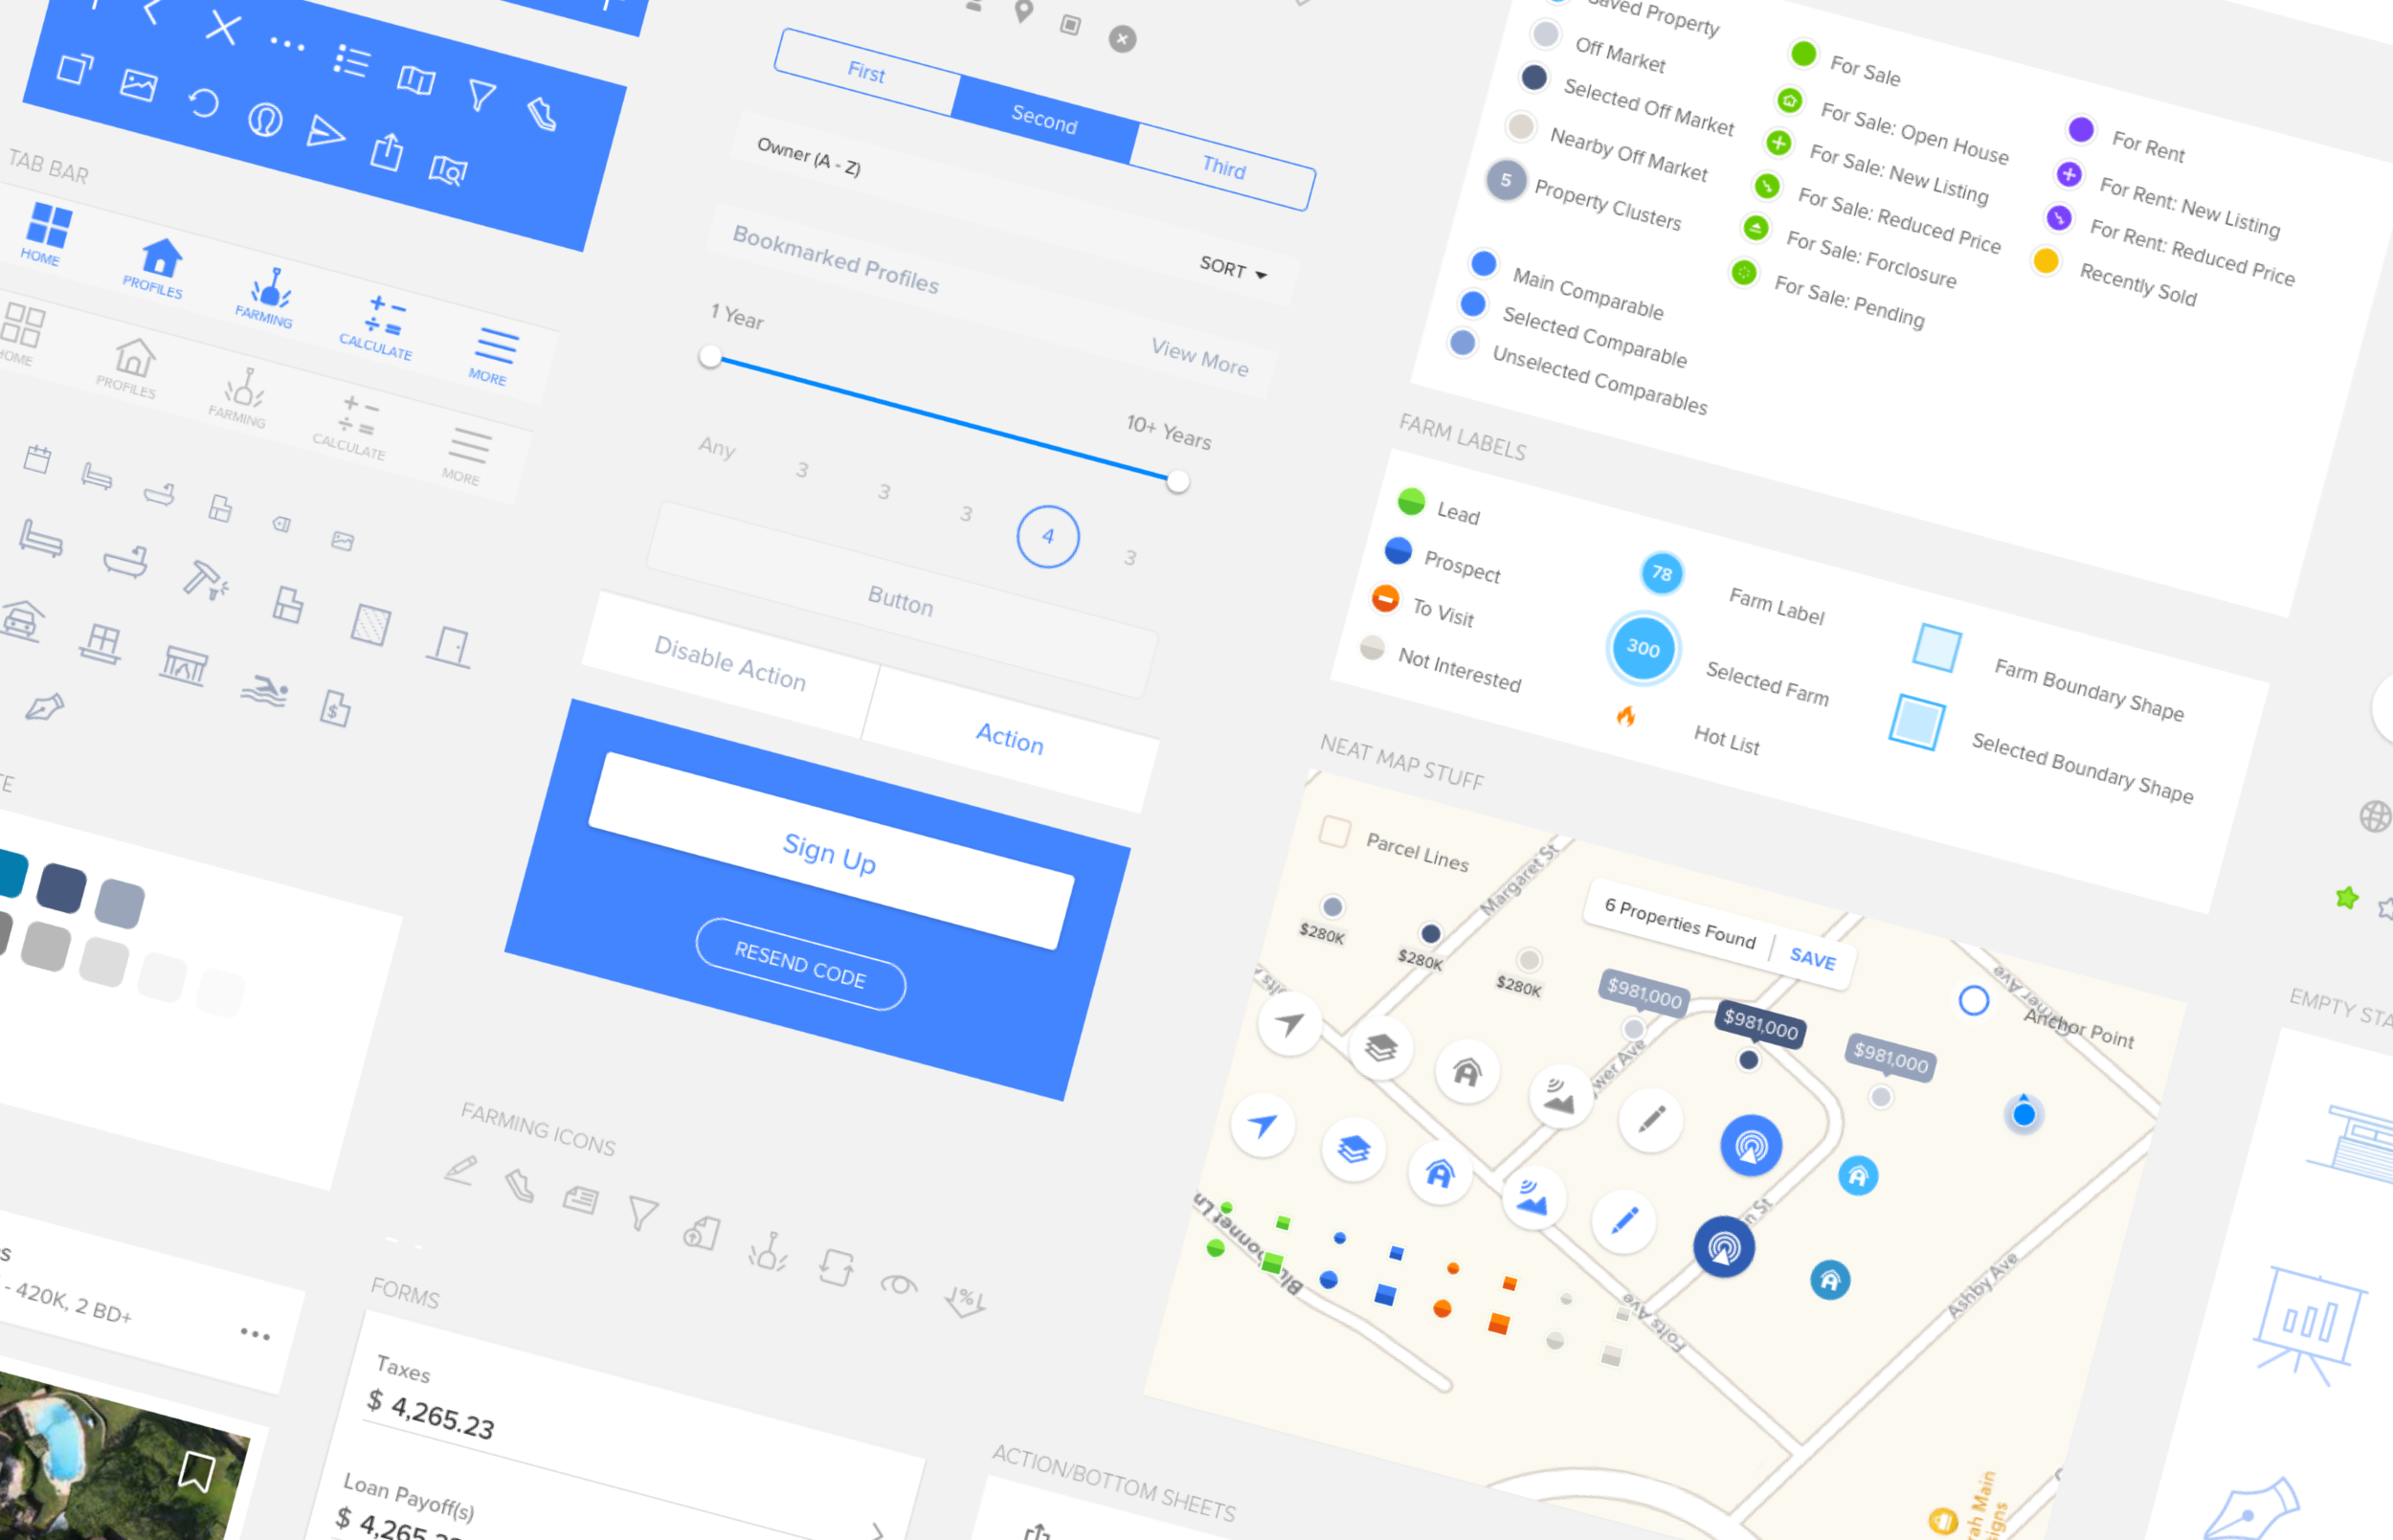 UI Kit - I started building a UI Kit to set a design look and feel for the app which then evolved to style consistency between the team. We leveraged Sketch symbols and Craft Library plugin to keep icons and commonly used patterns up to date. When all out fails we refer to the UI Kit document to pull GUI patterns.